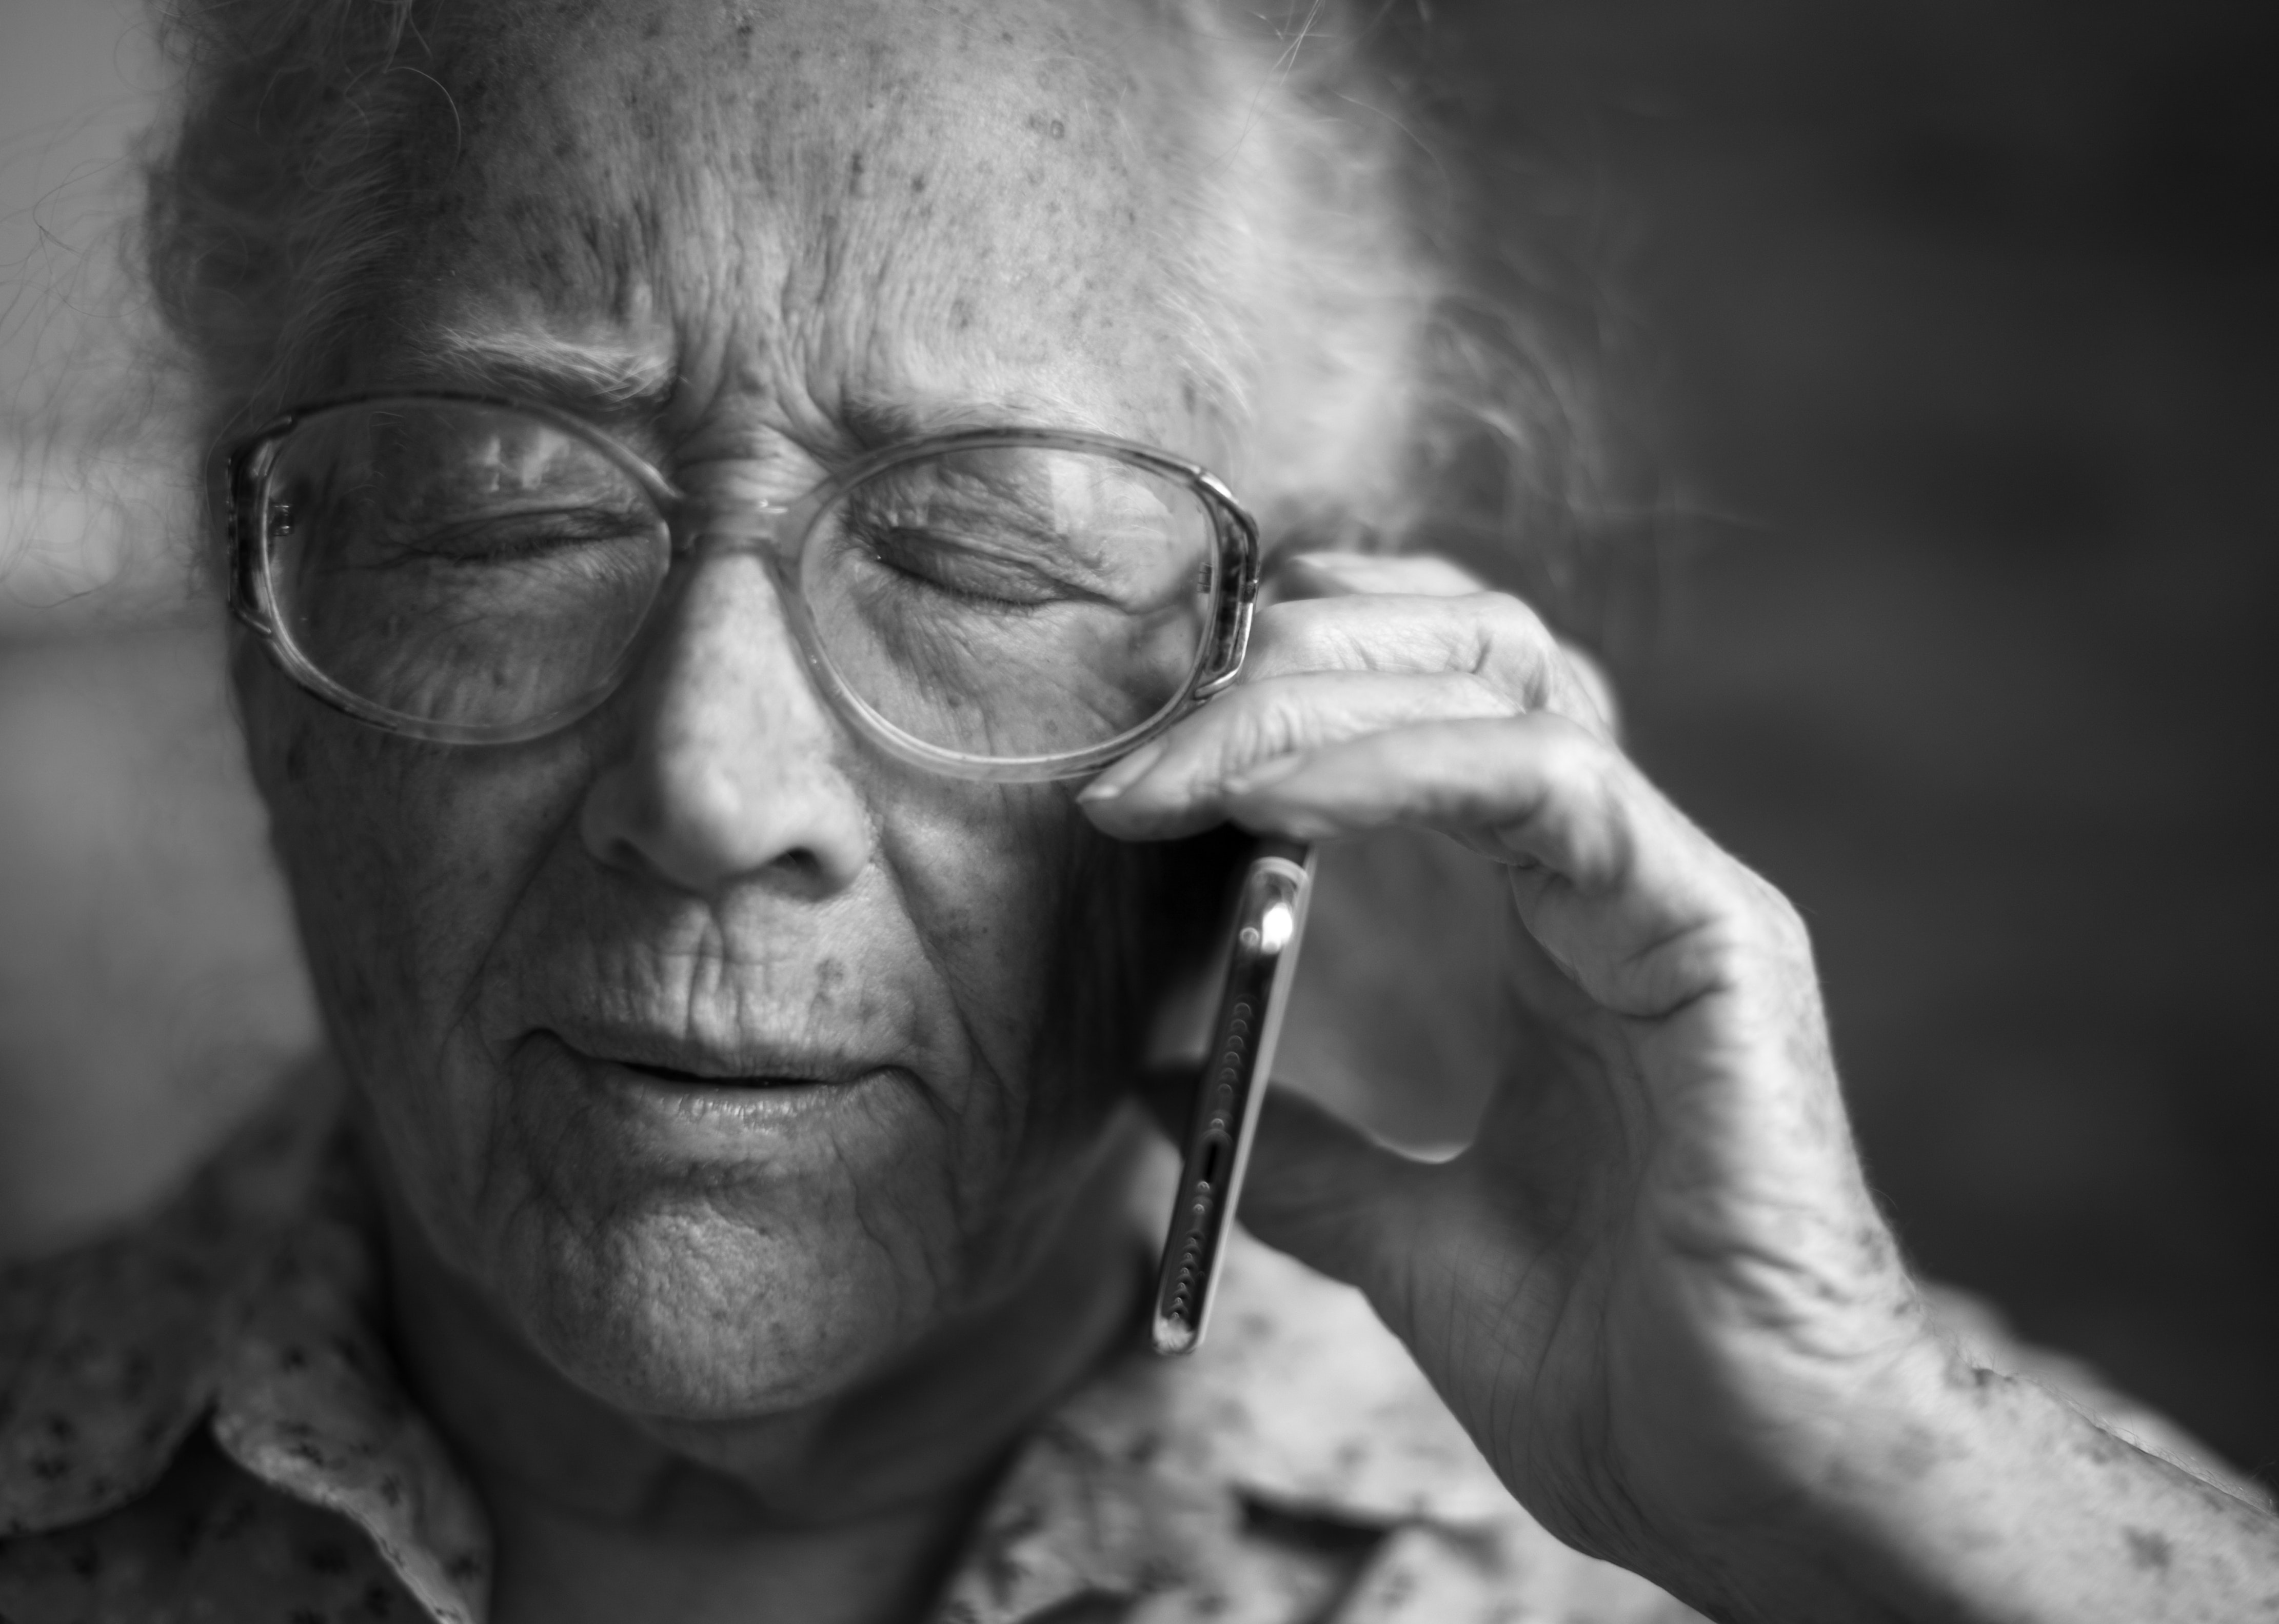 Older woman in black and white holding mobile phone